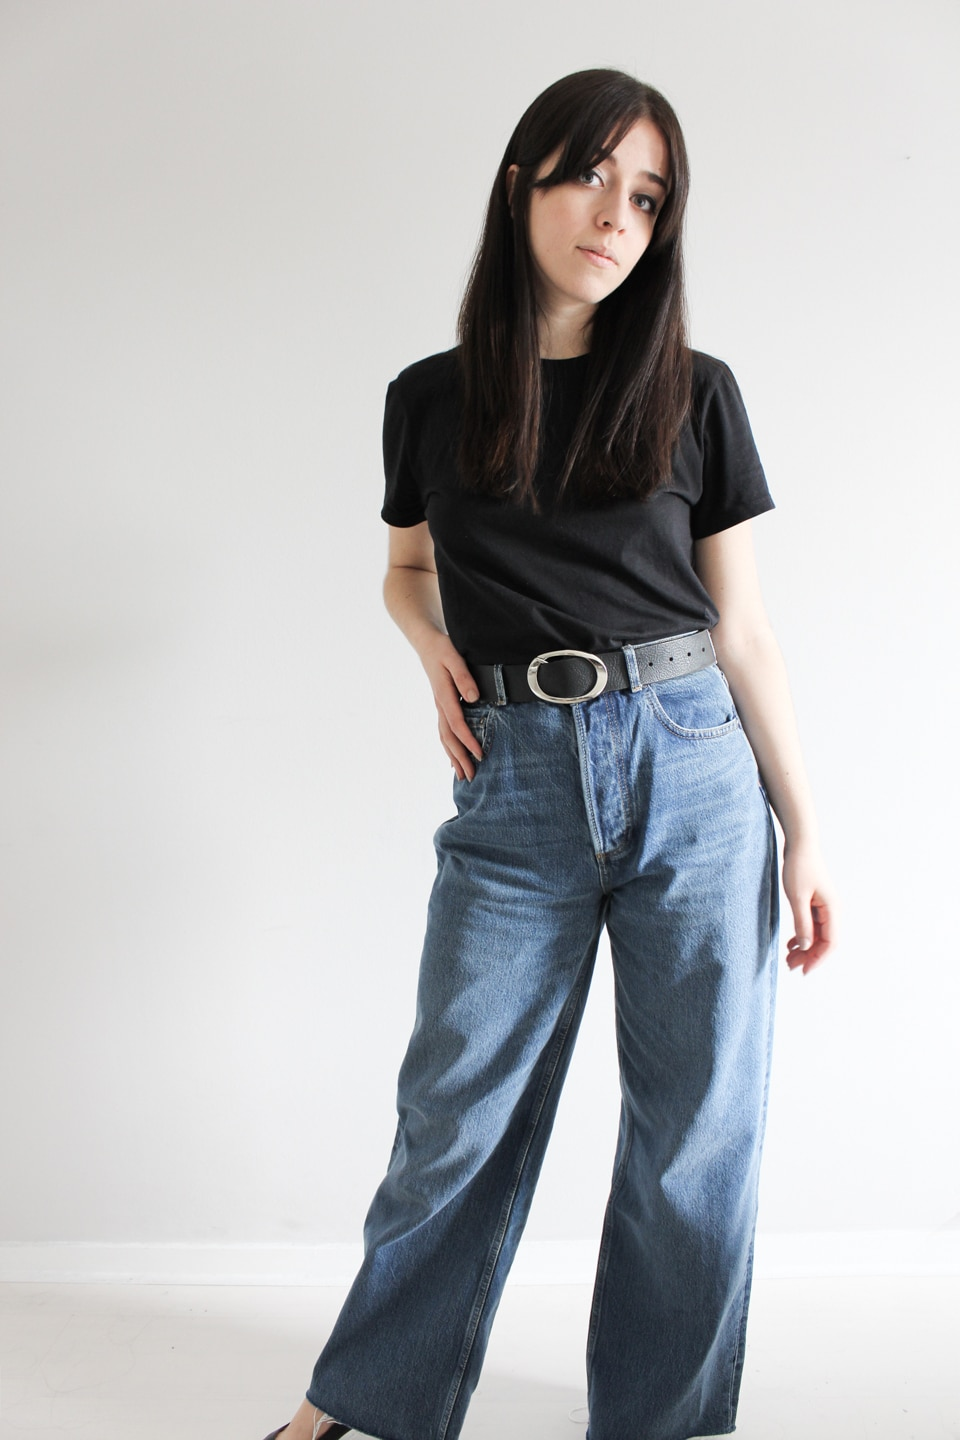 Besma wears black t-shirt and jeans